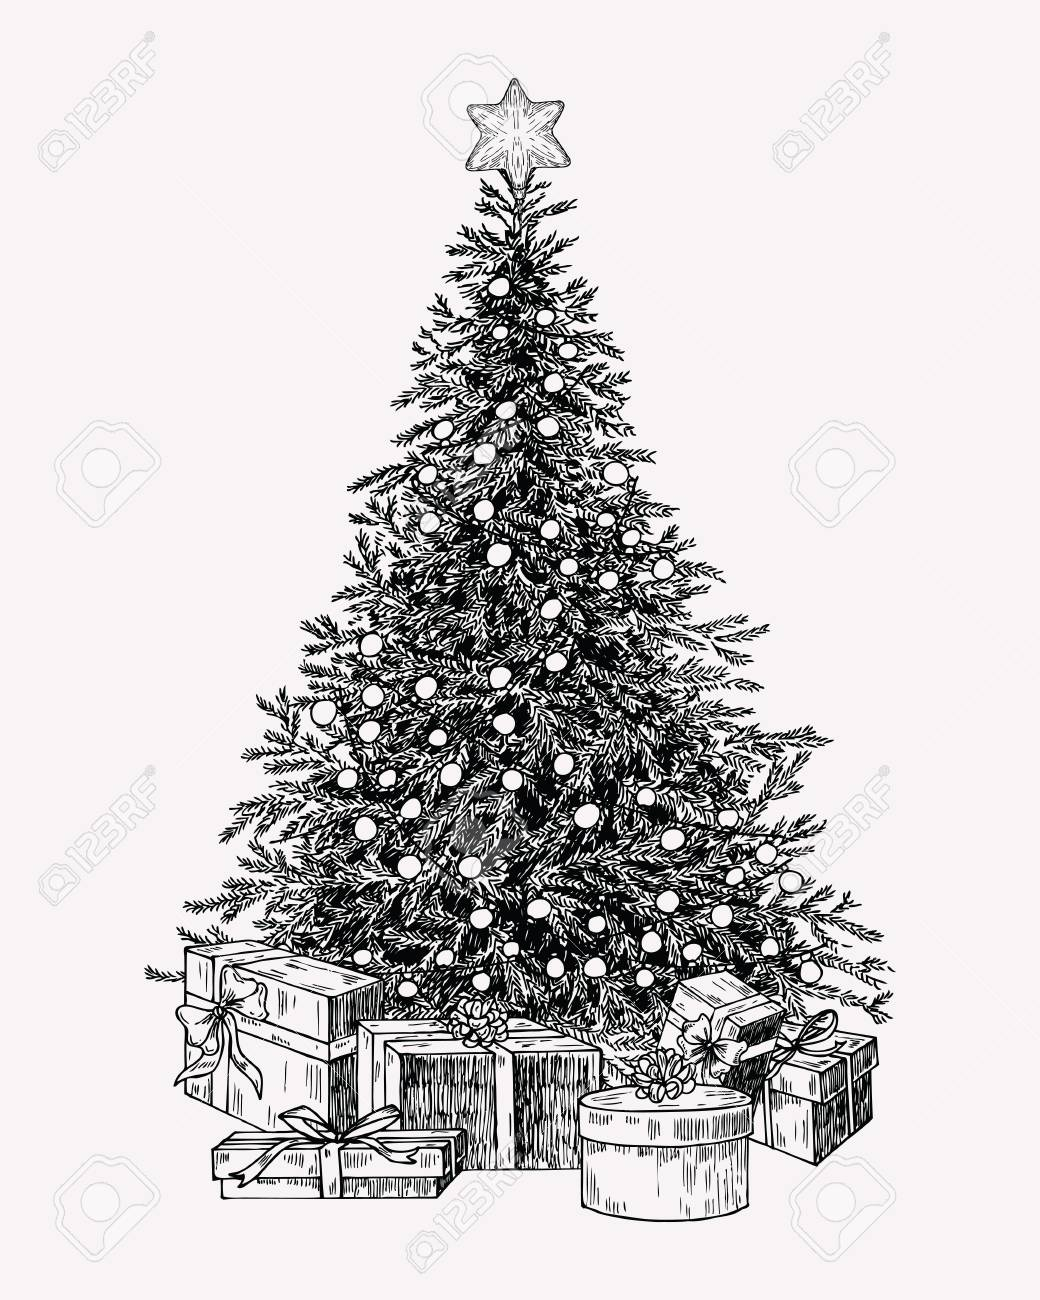 Christmas Tree Vintage Illustration Hand Drawn Holiday Decor Royalty Free Cliparts Vectors And Stock Illustration Image 127095987